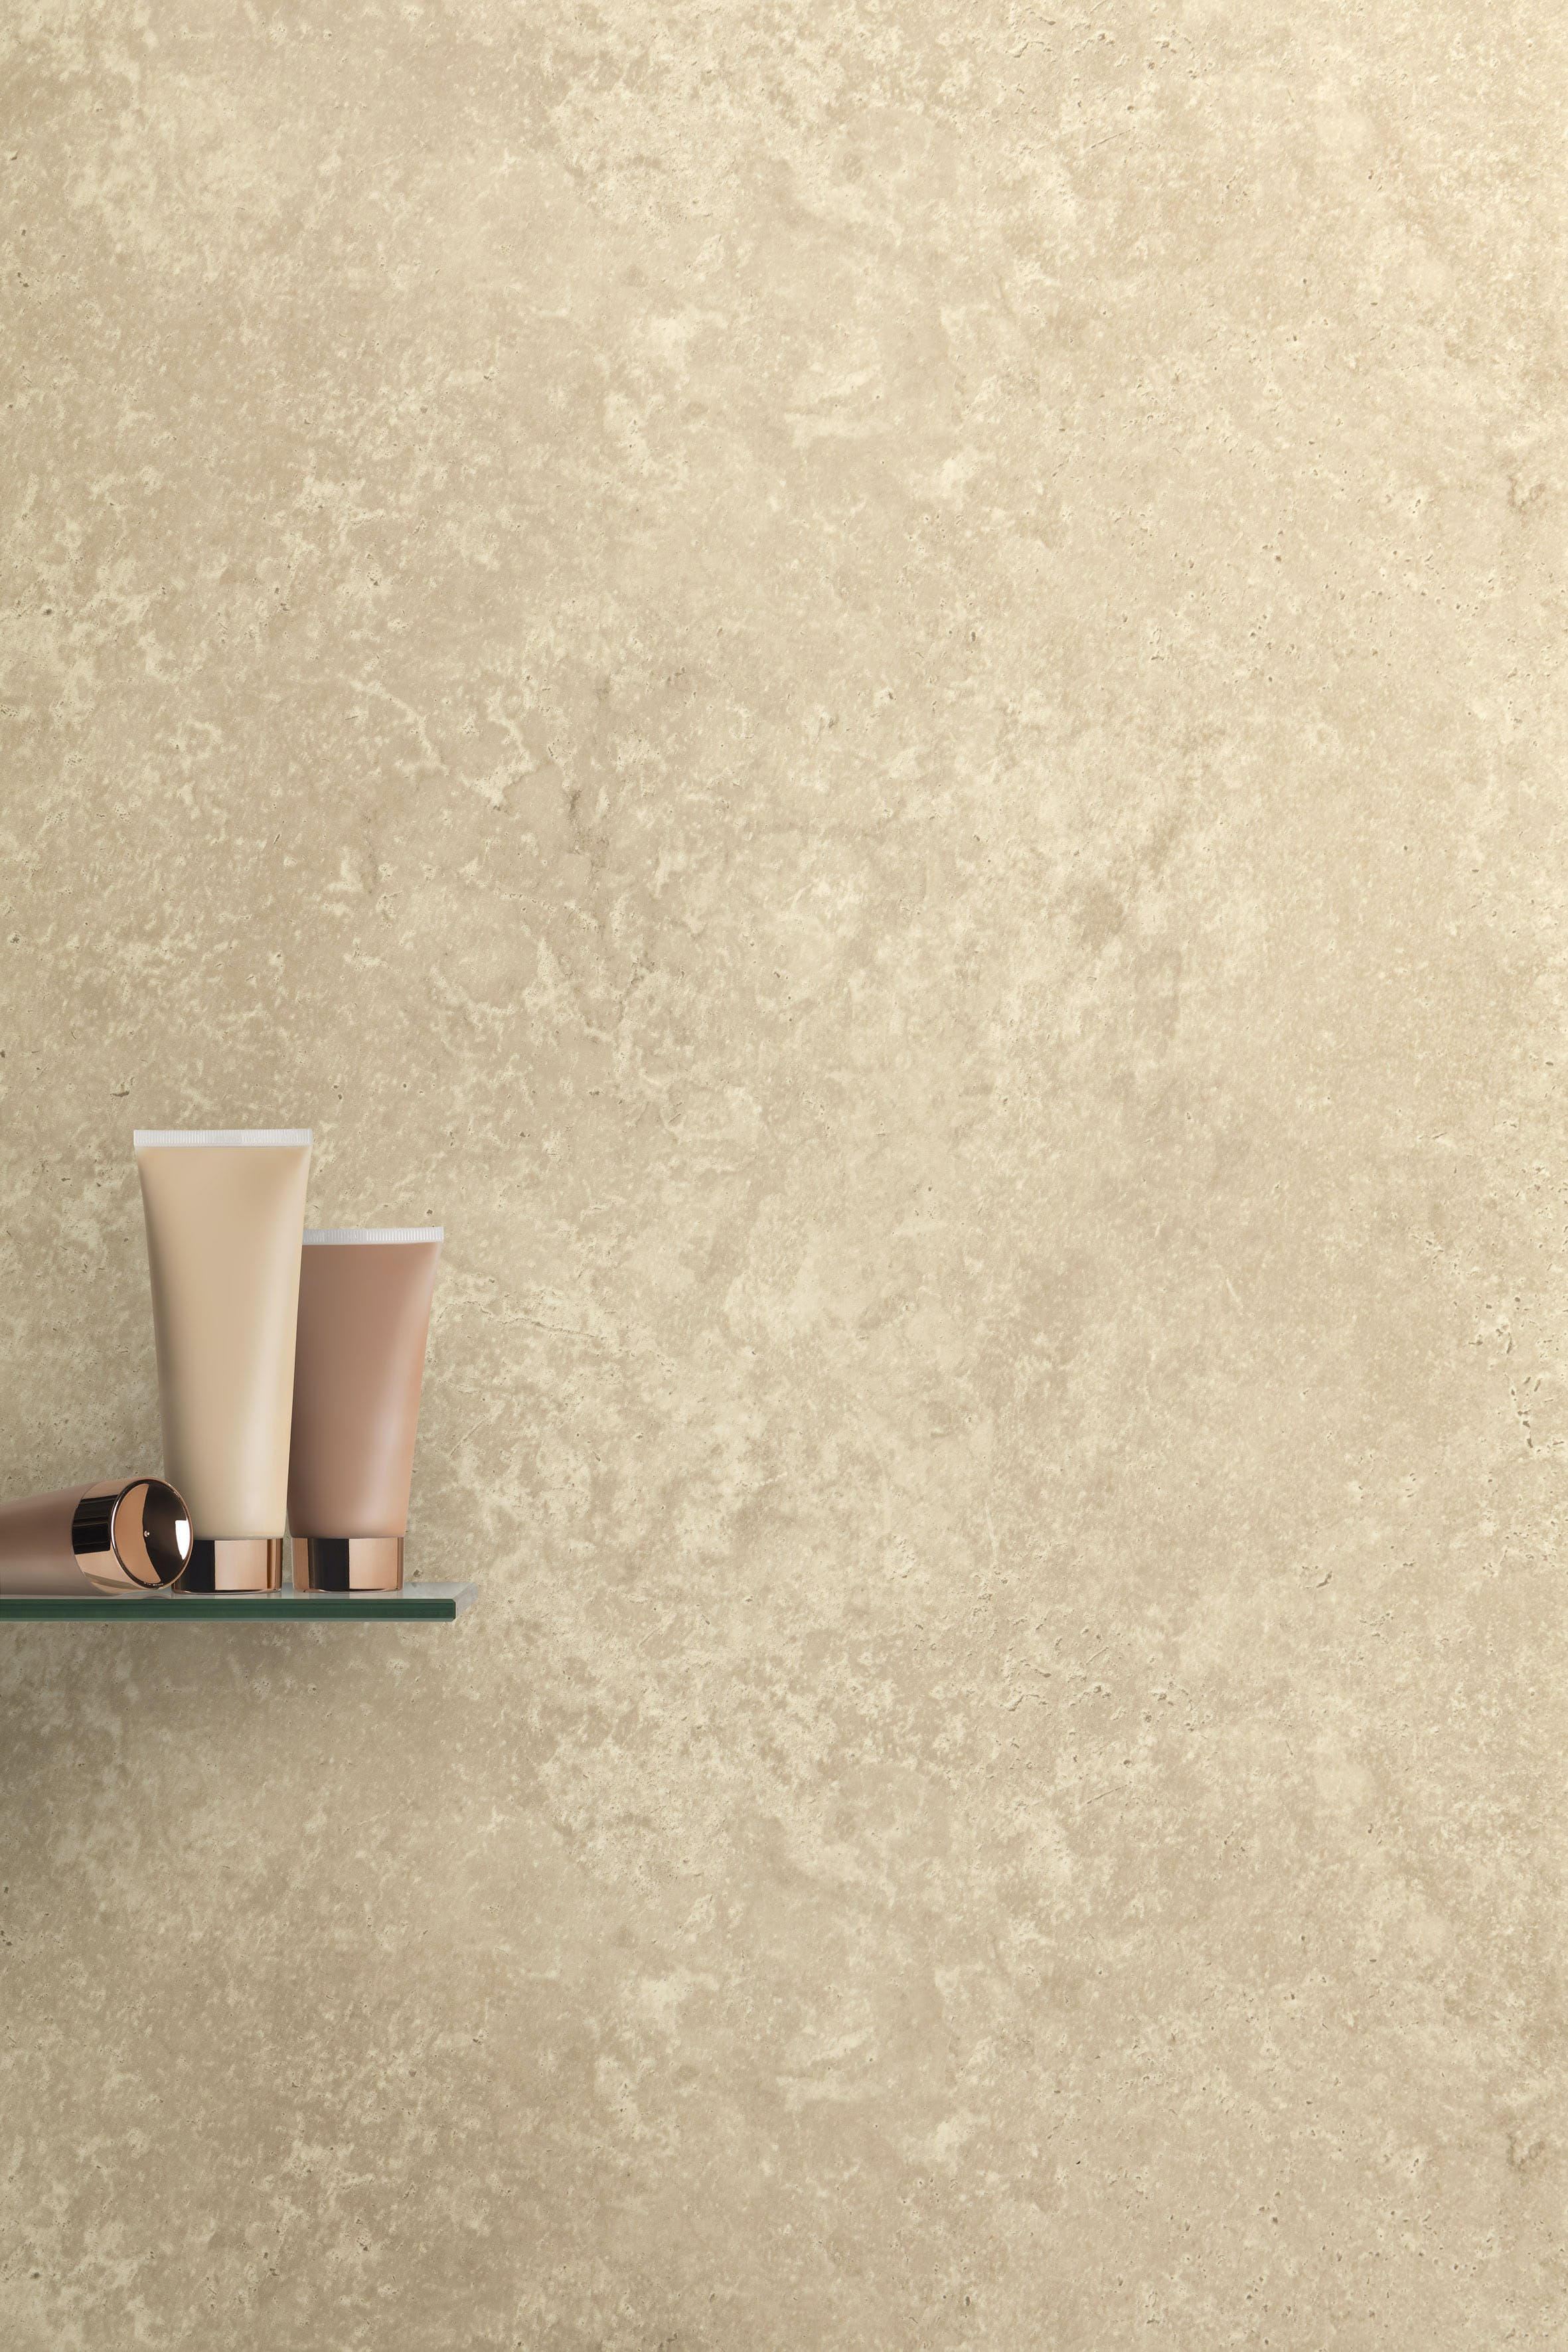 Max-Fit Beige Concrete PVC Shower Wall Panel (2400mm x 1000mm x 10mm)